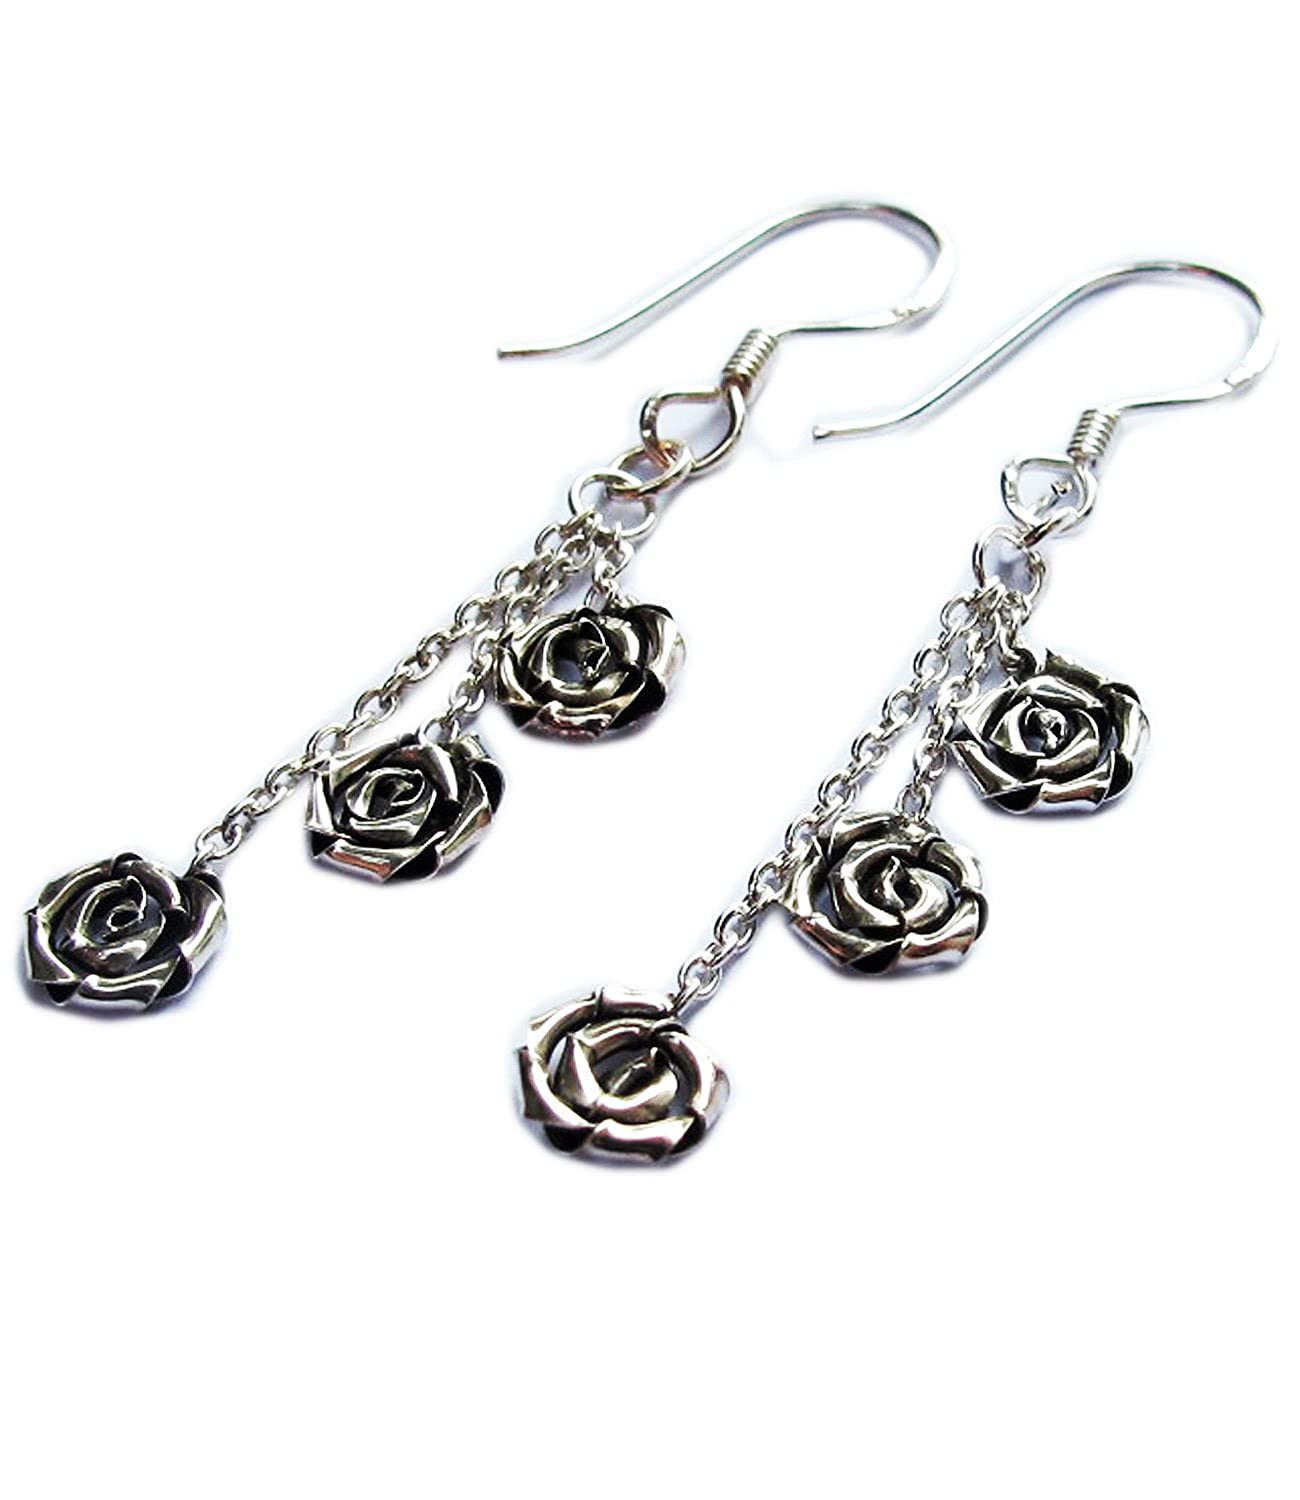 Cool THAI STERLING ROSE FLOWER EARRING WEIGHT 1.06 G BEAUTIFUL By Handmade { STERLING EARRING/_Box925/_Box6/_1033 } SIZE 10X40 MM